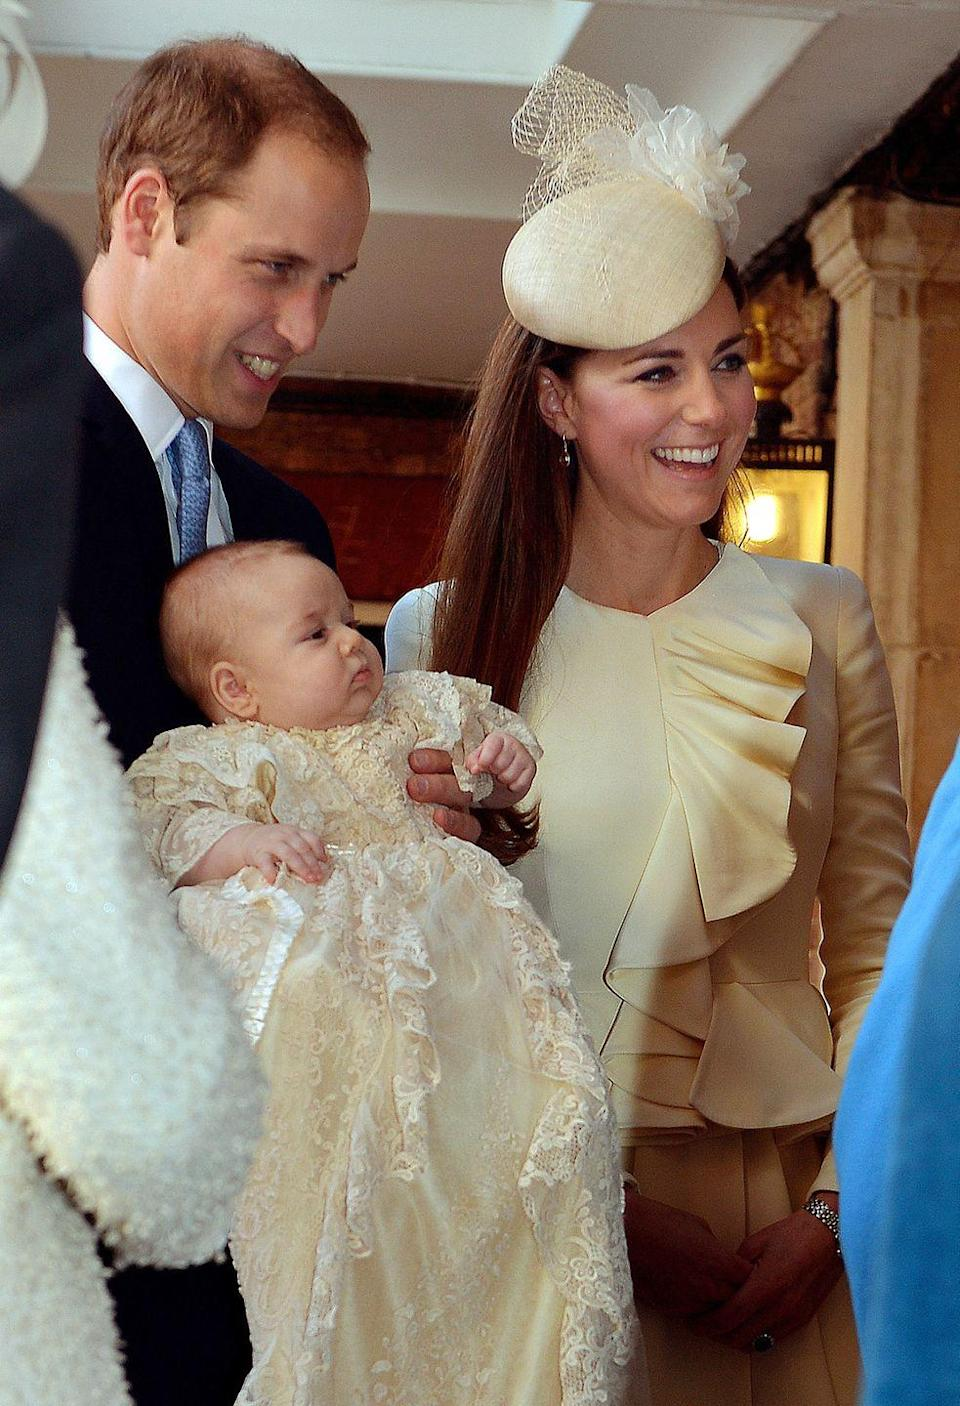 <p>Two of the first people to see the duchess after she gave birth were her hairdresser, Amanda Cook-Tucker, and her personal assistant and stylist, Natasha Archer. The duchess wore a Jenny Packham blue-and-white polka dot dress after the birth in a nod to a similar dress Diana wore when she left the same hospital with Prince William more than 30 years earlier.</p><p><em>Left: </em>The Duke and Duchess of Cambridge hold Prince George at his christening on October 23, 2013.<br></p>